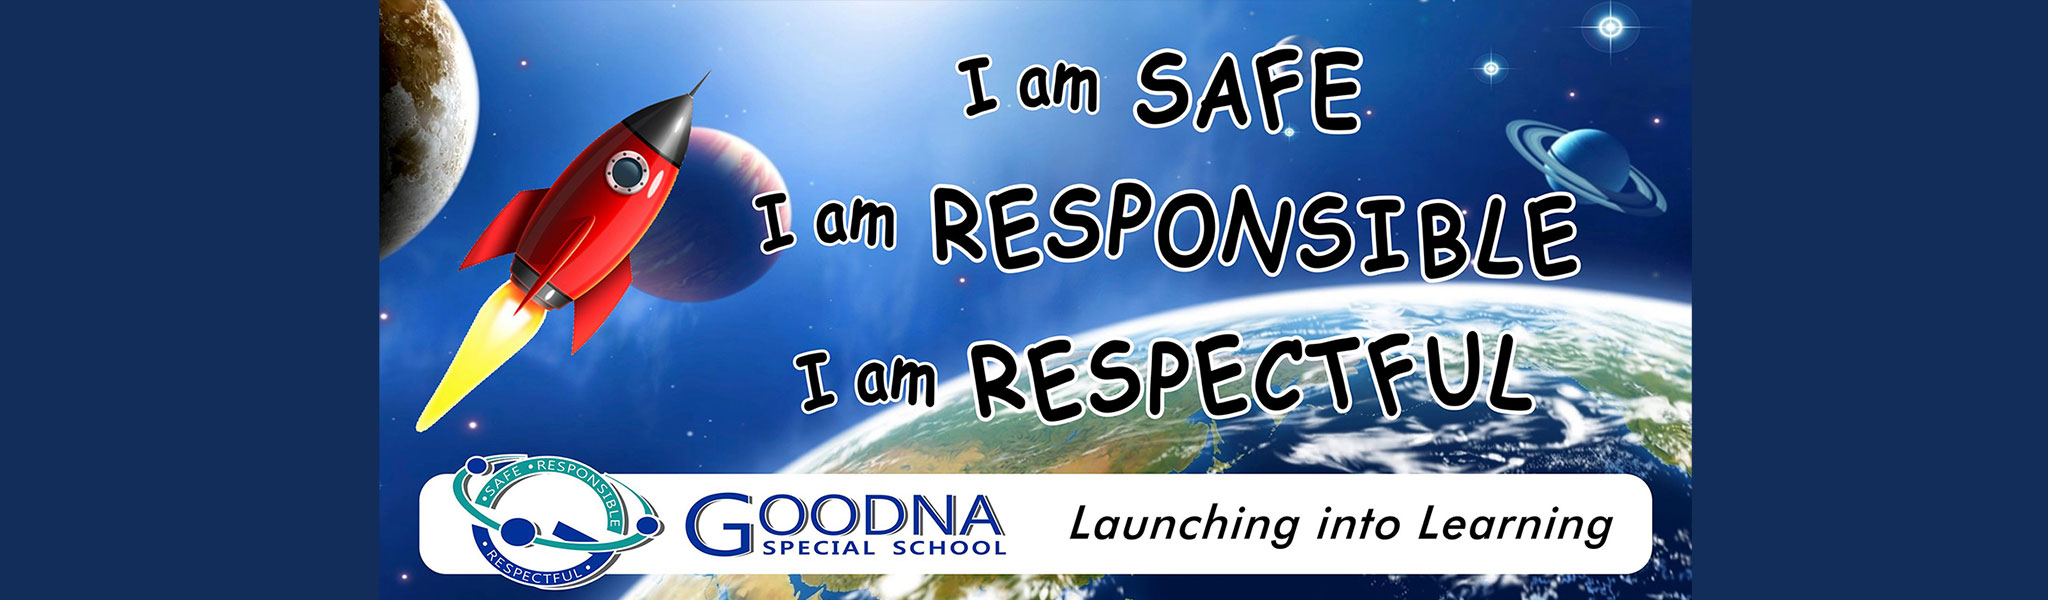 Safe, responsible and respectful